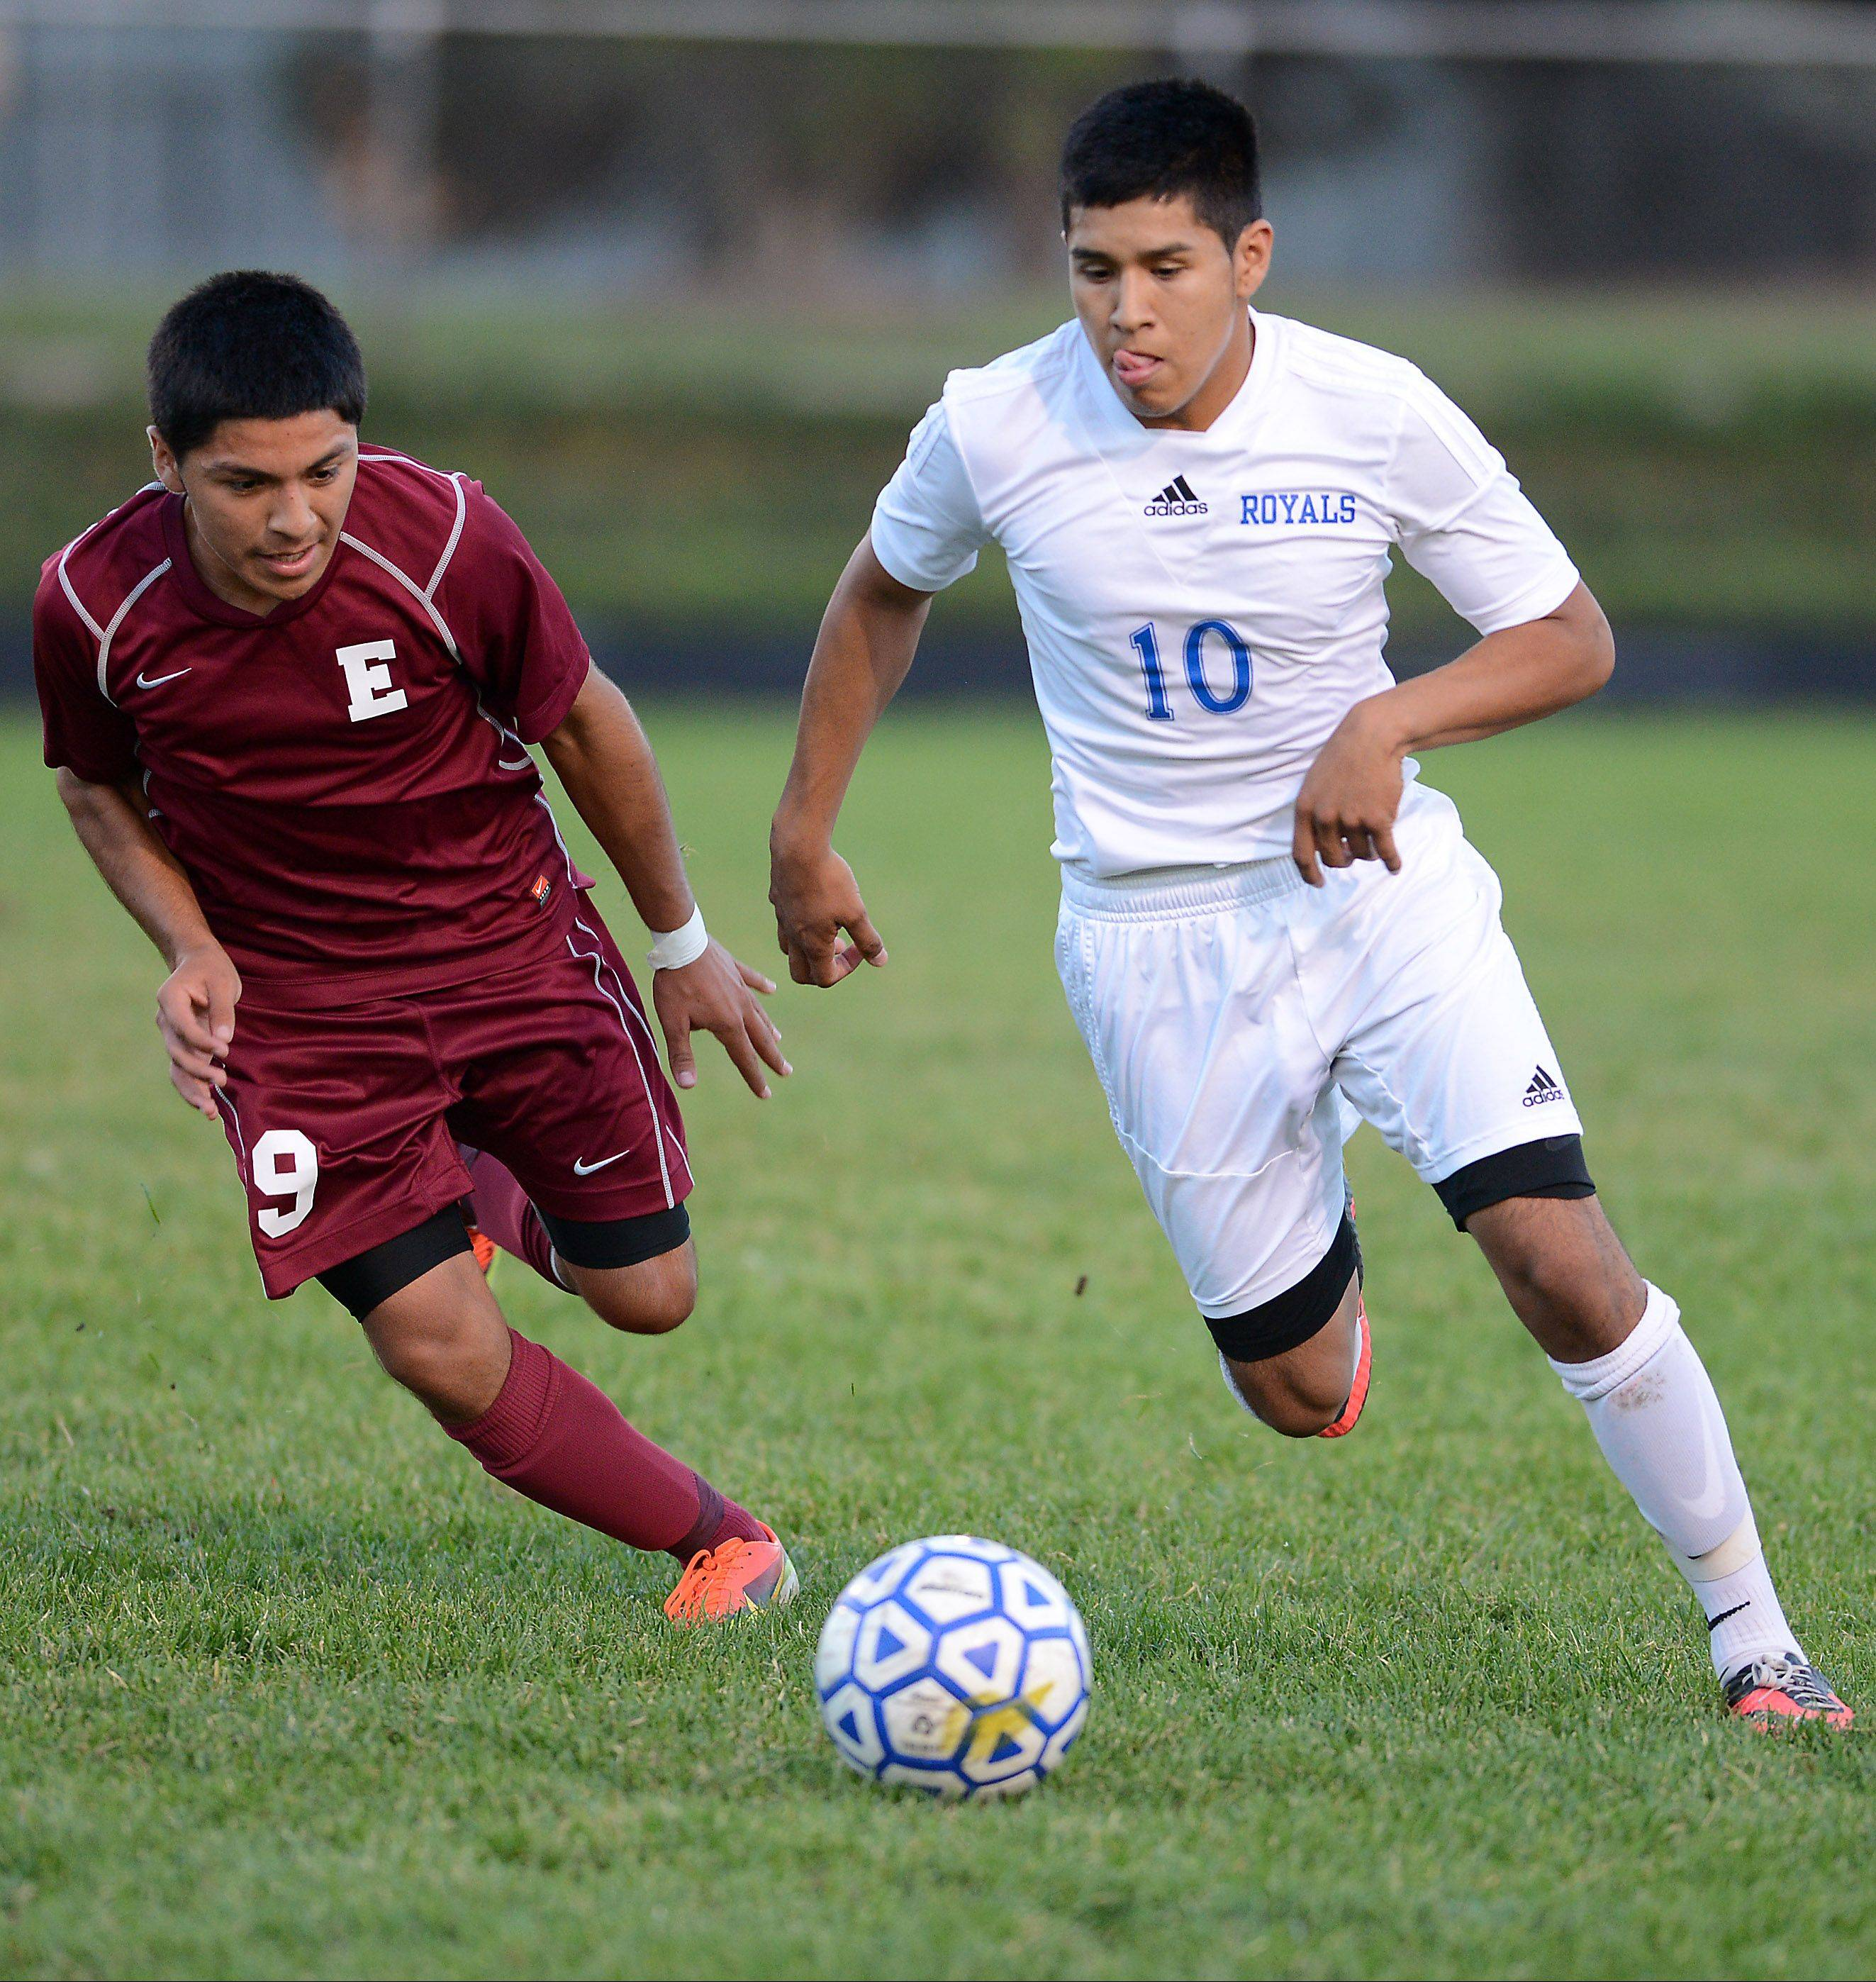 Larkin's Gonsalo Garcia brings the ball through the midfield with Elgin's Jose Jaimes giving chase during Tuesday's game at Memorial Field in Elgin.